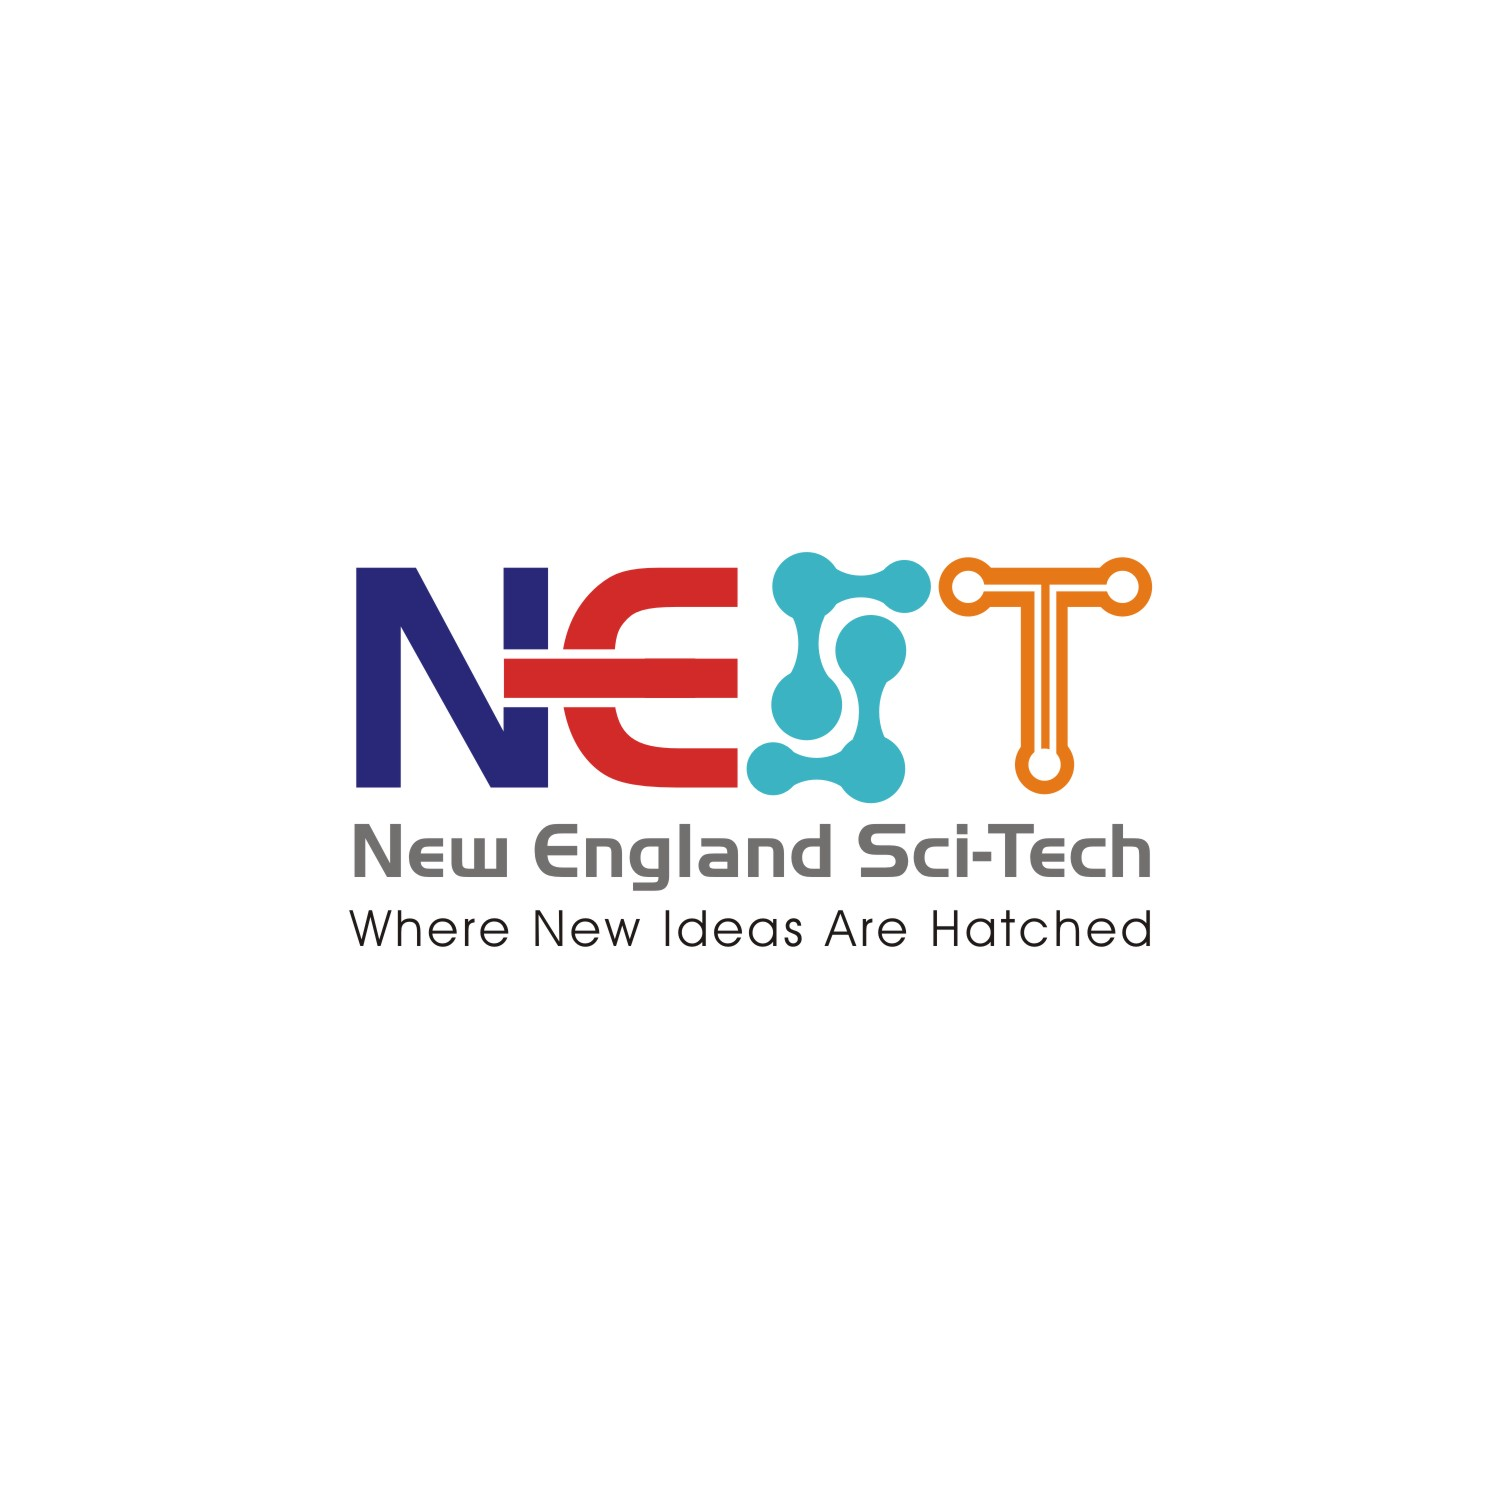 Modern, Colorful, Education Logo Design for New England Sci-Tech ...